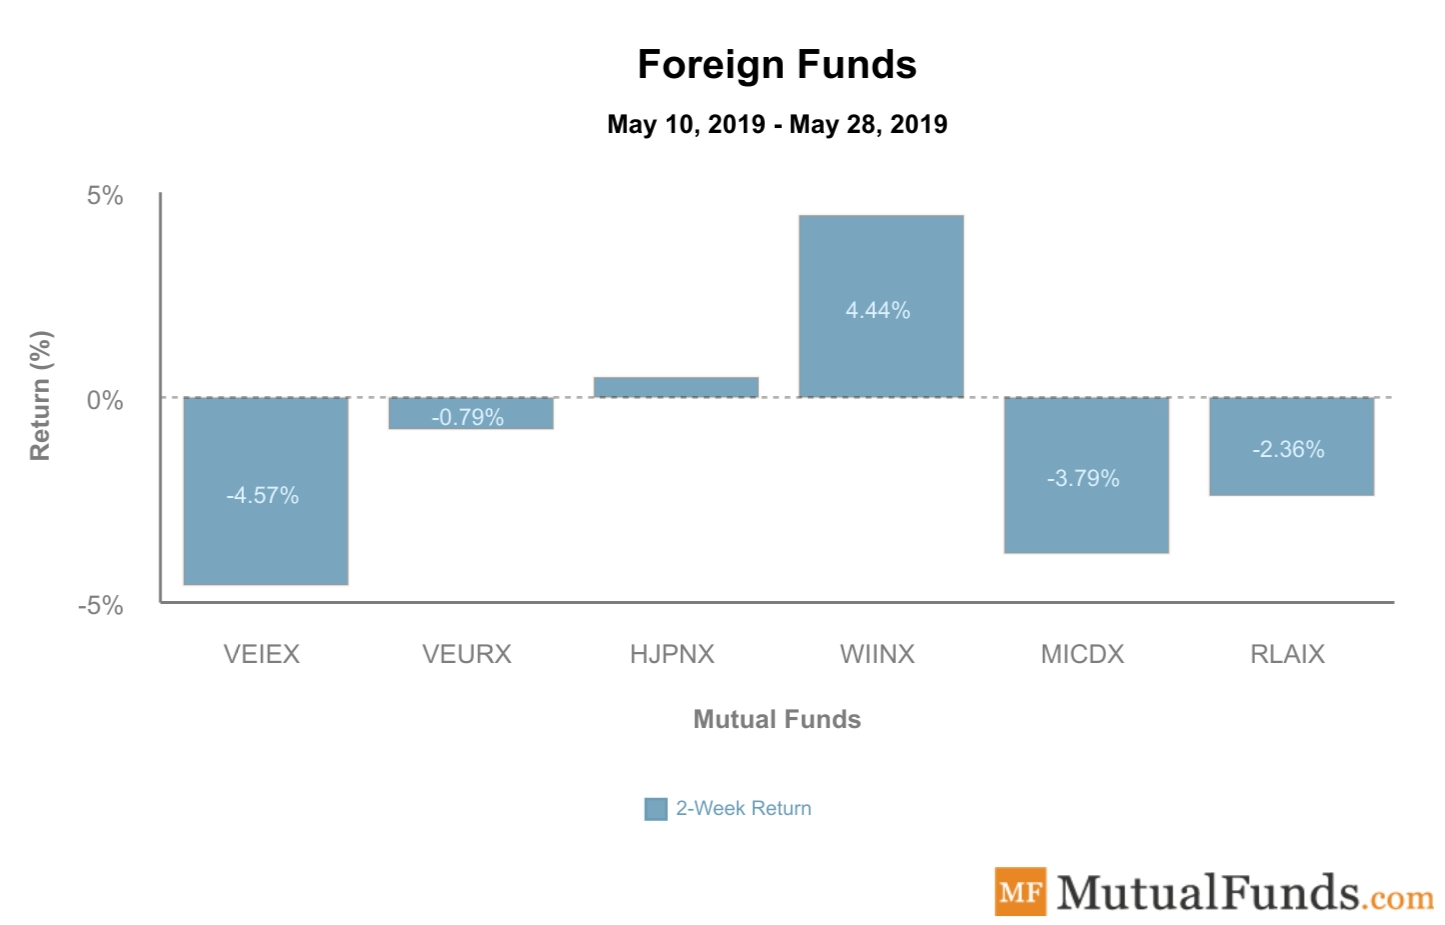 Foreign funds performance - May 28, 2019